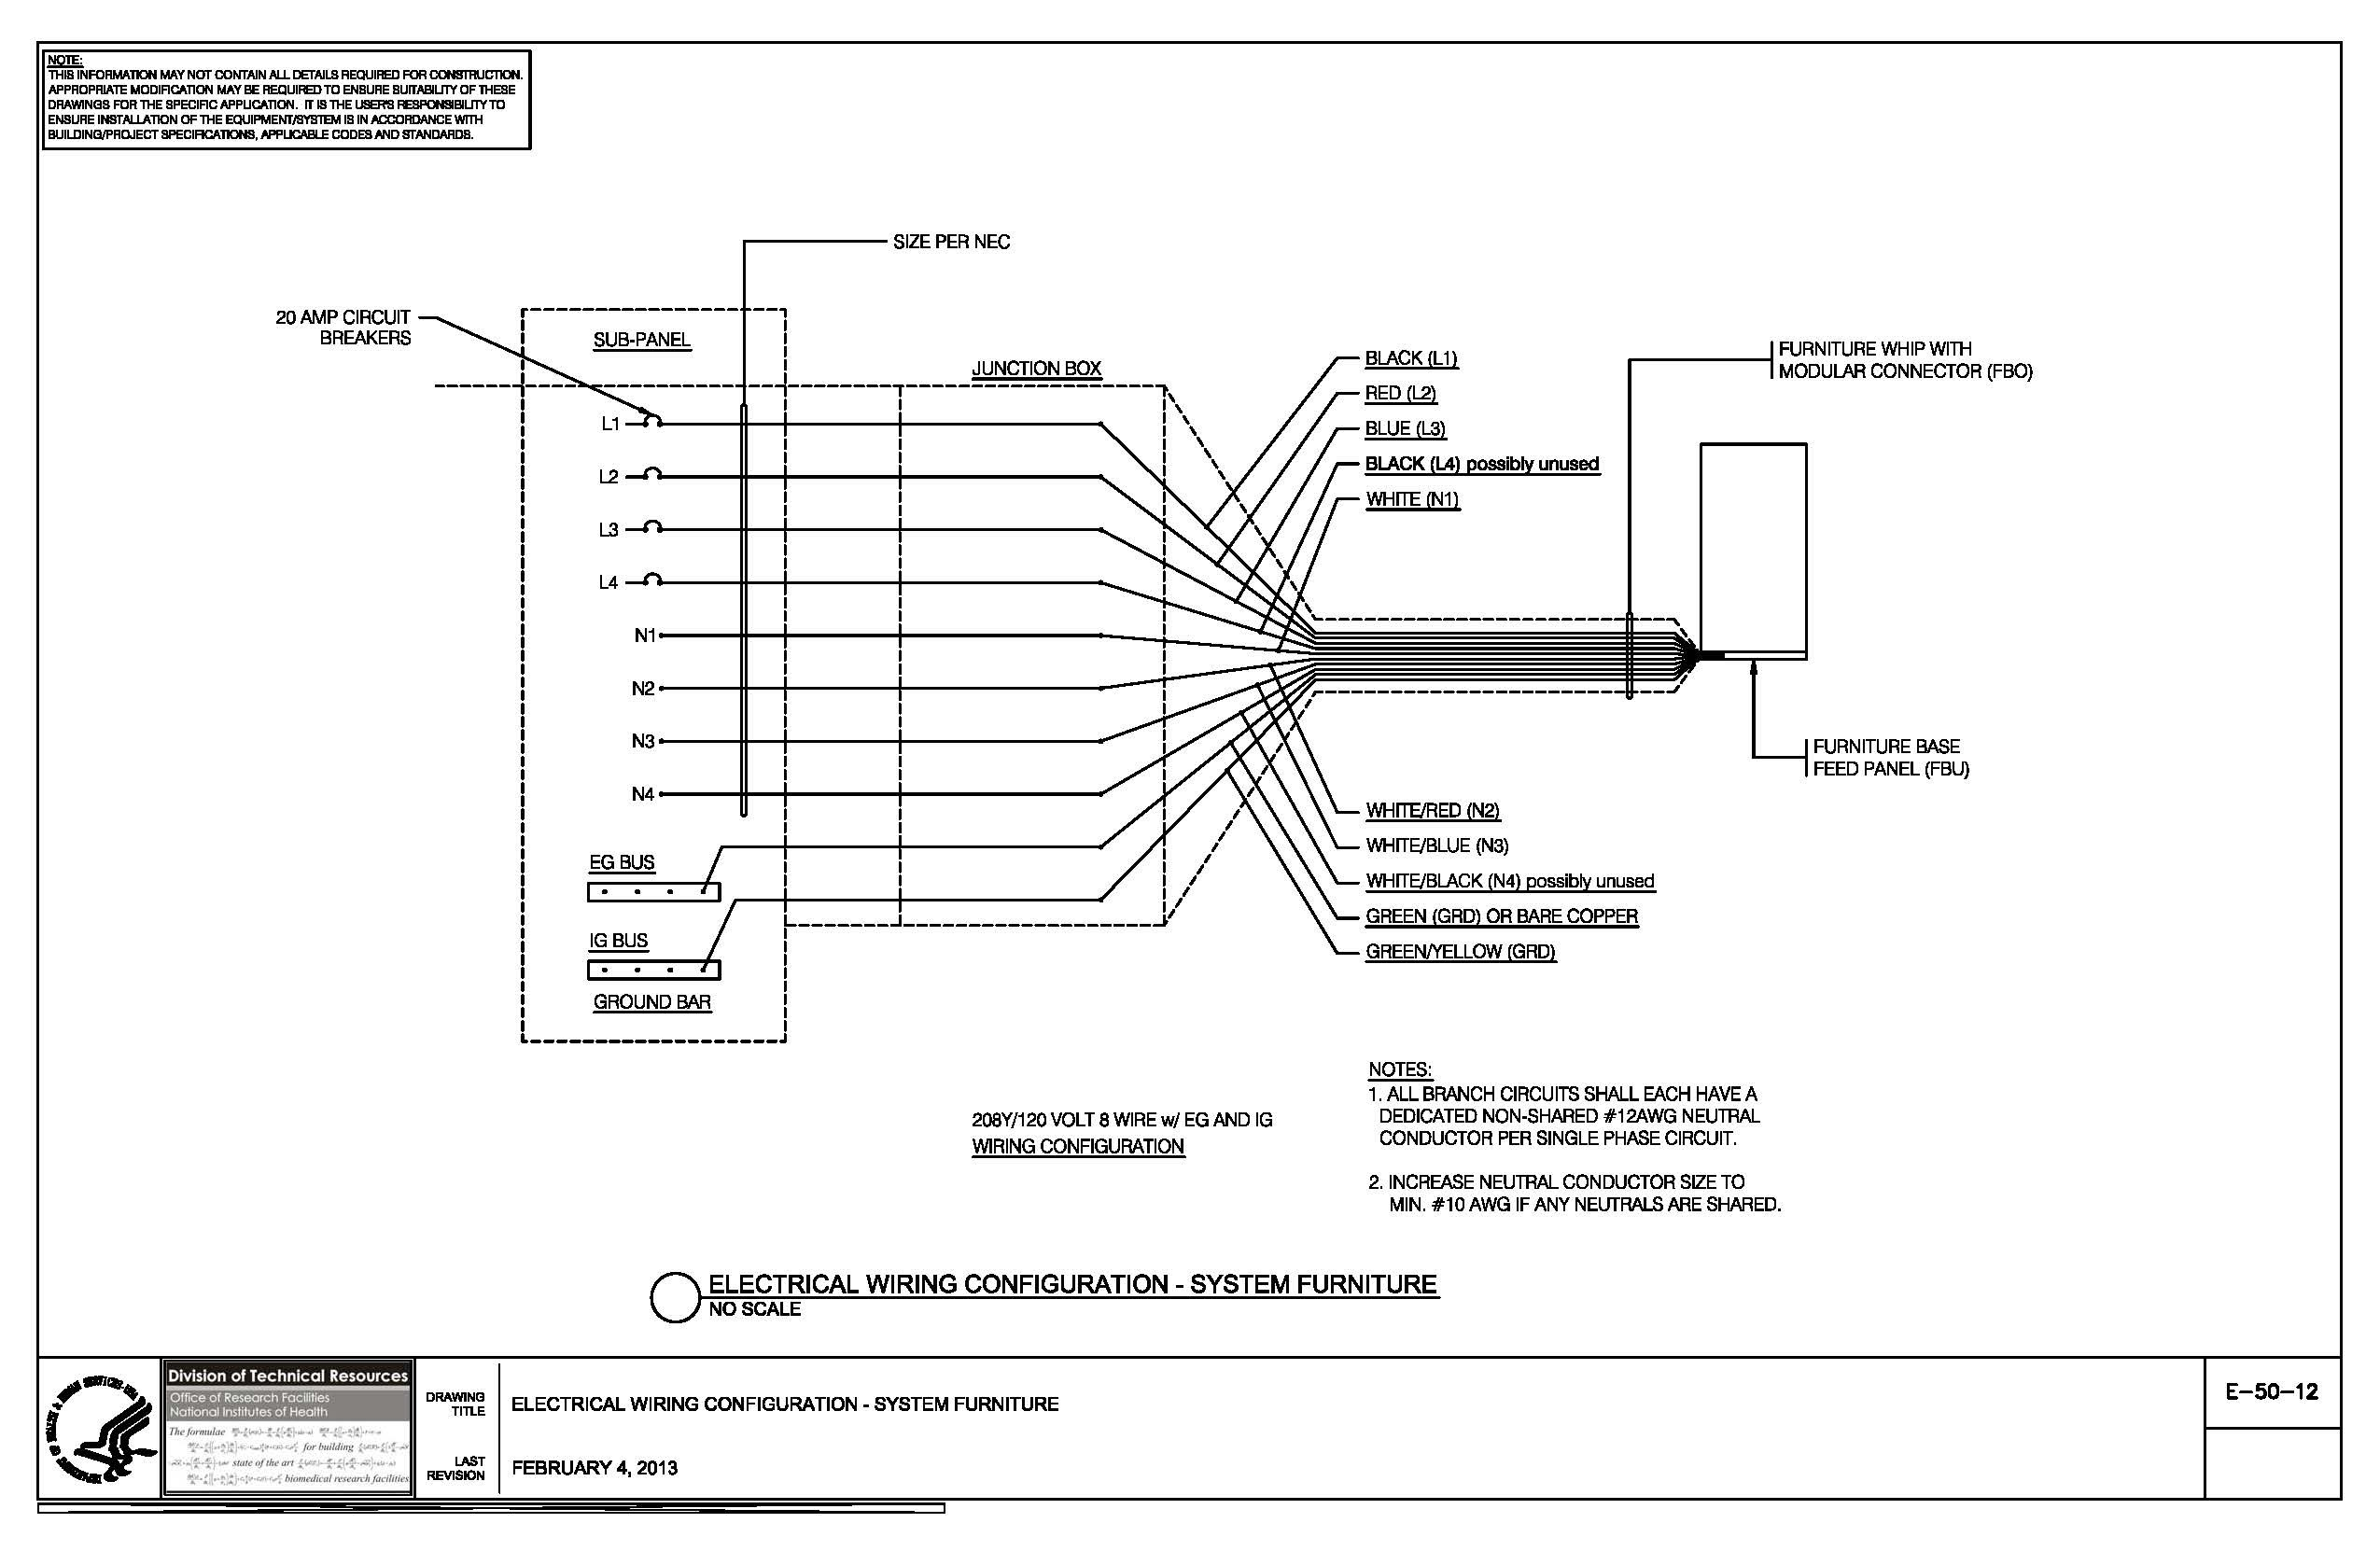 E 50 12 Electrical Wiring Configuration System Furniture